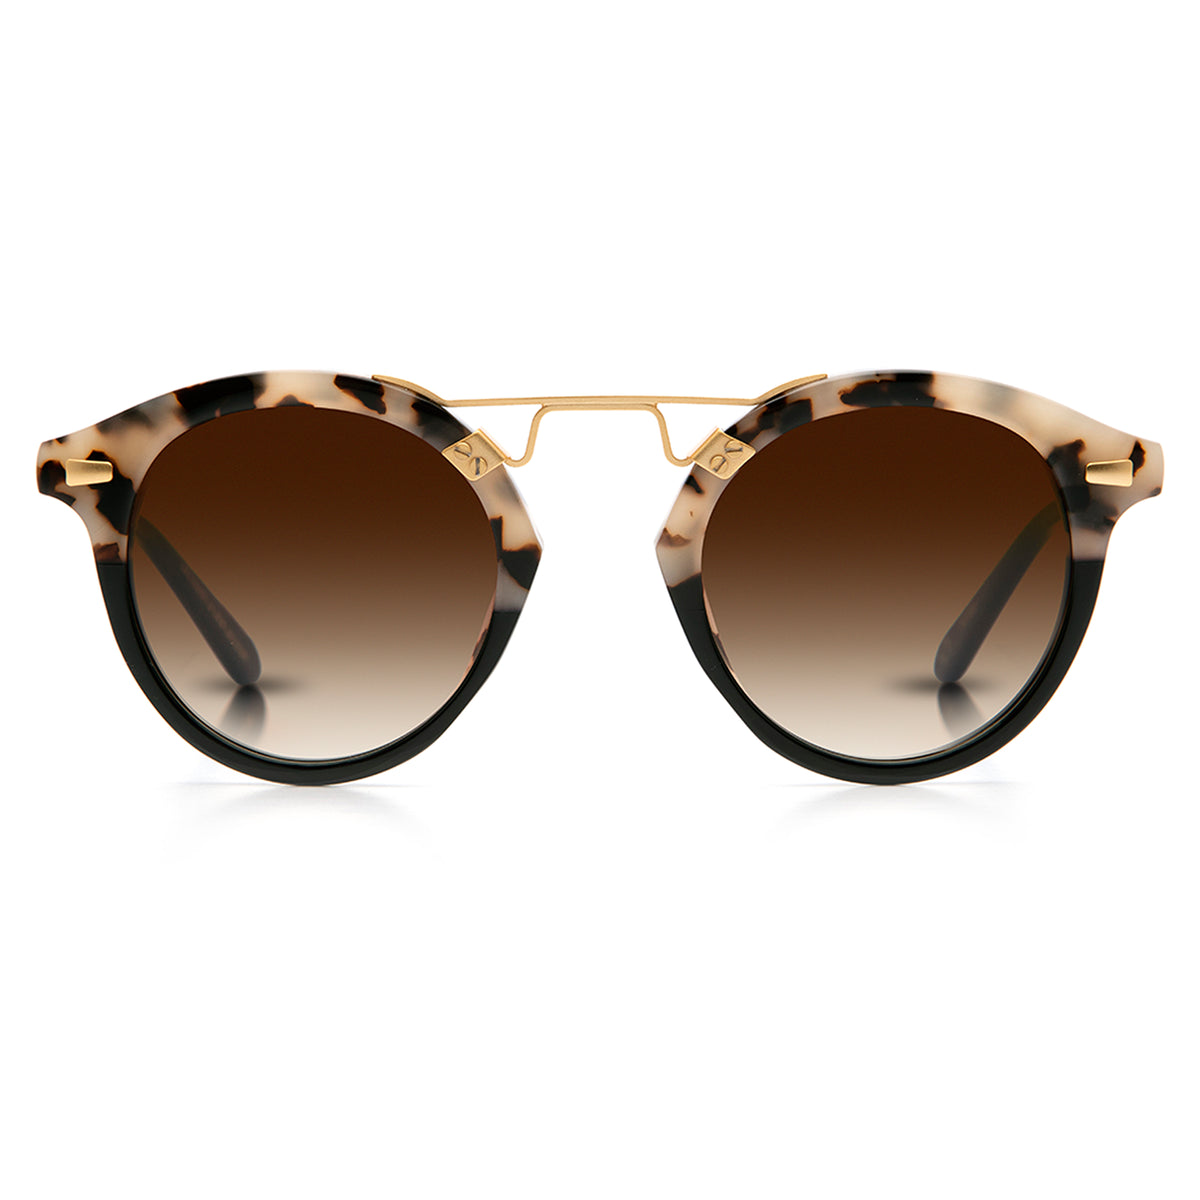 STL II | Oyster to Black 24K - round Sunglasses handcrafted from acetate featuring 24K gold hardware.